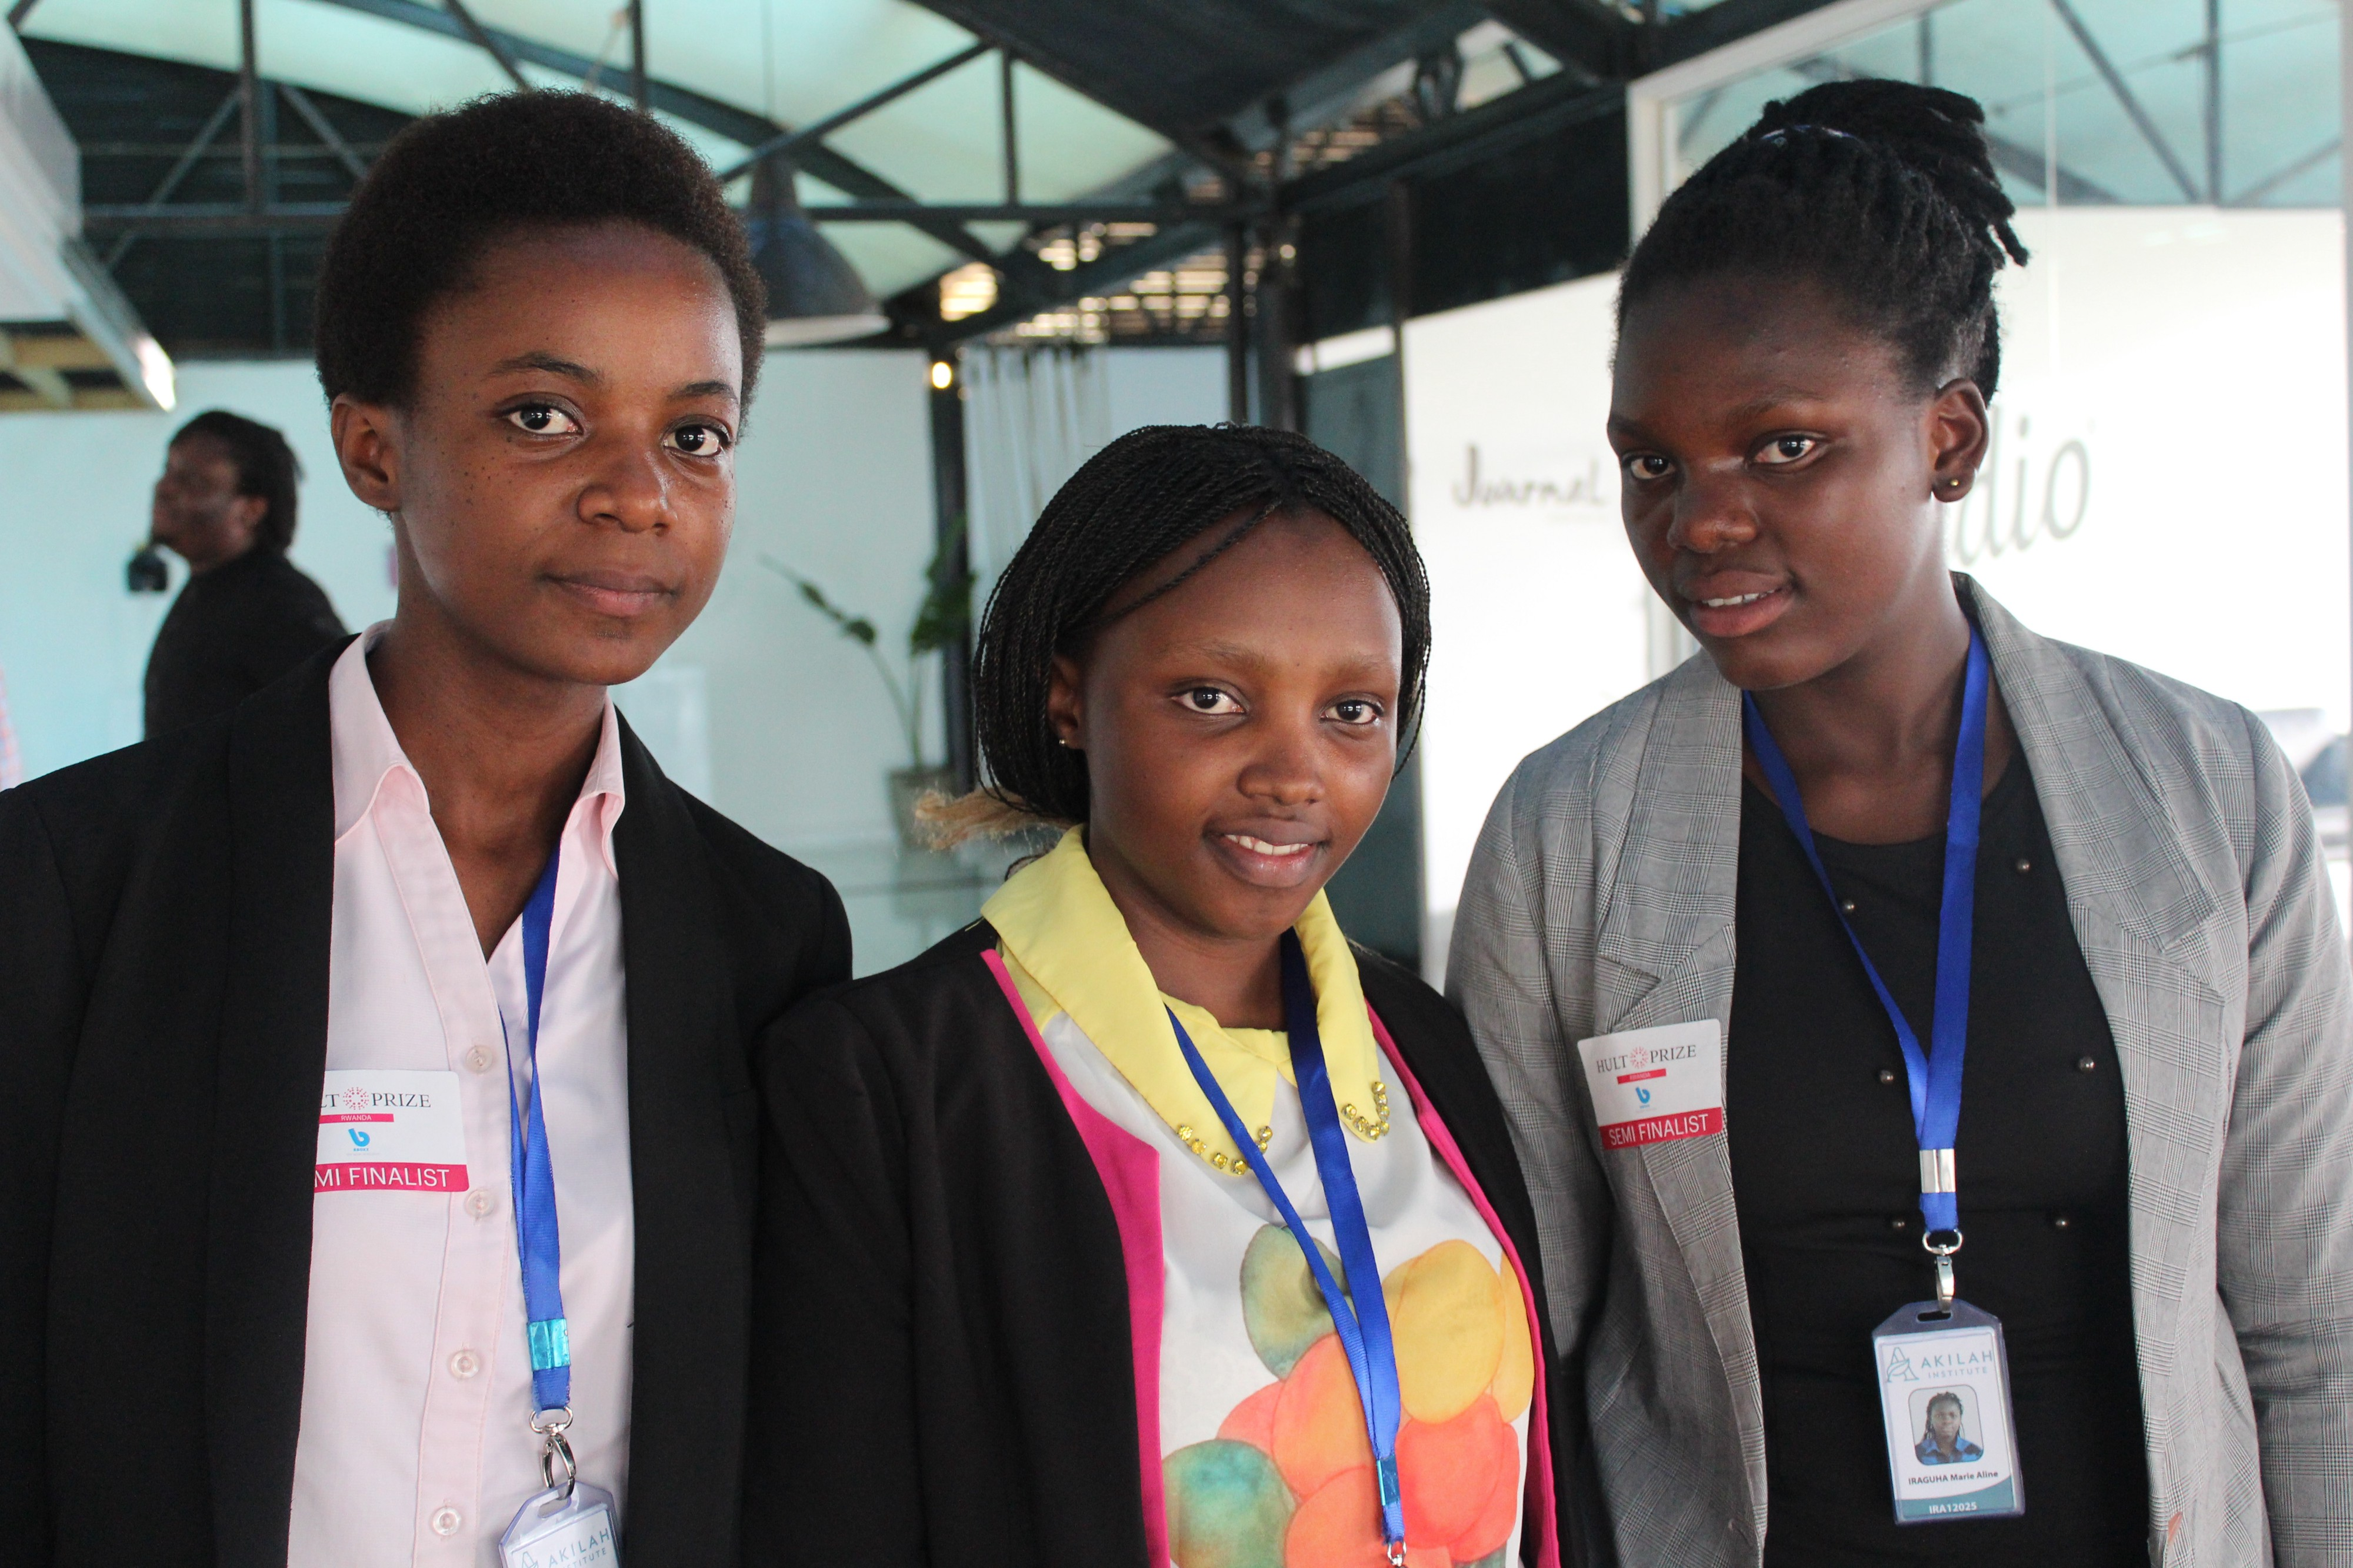 Akilah Students Compete for Hult Prize With Sustainable